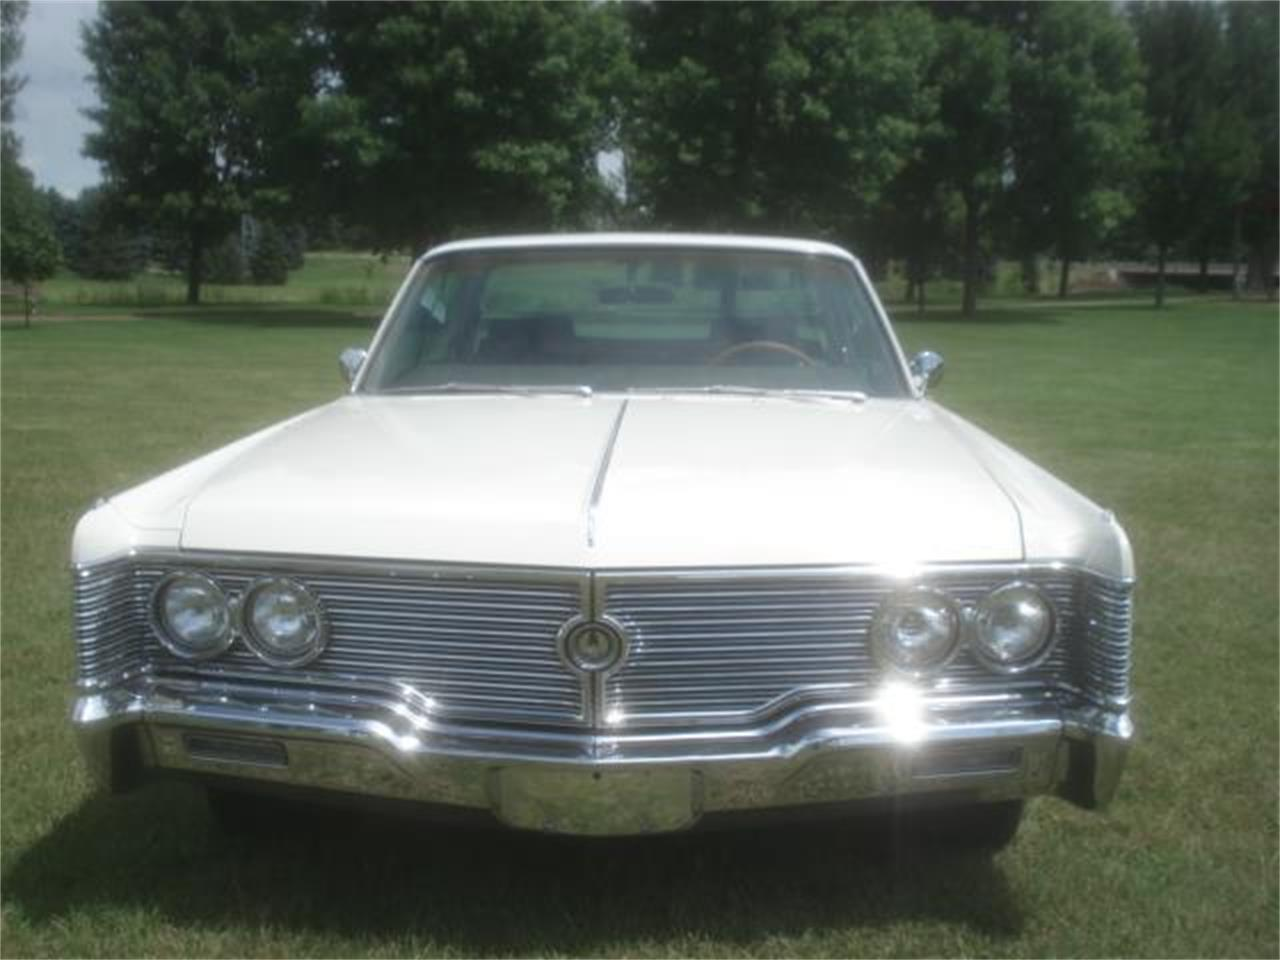 Large Picture of Classic 1968 Chrysler Imperial located in South Dakota - $14,250.00 - J6RX